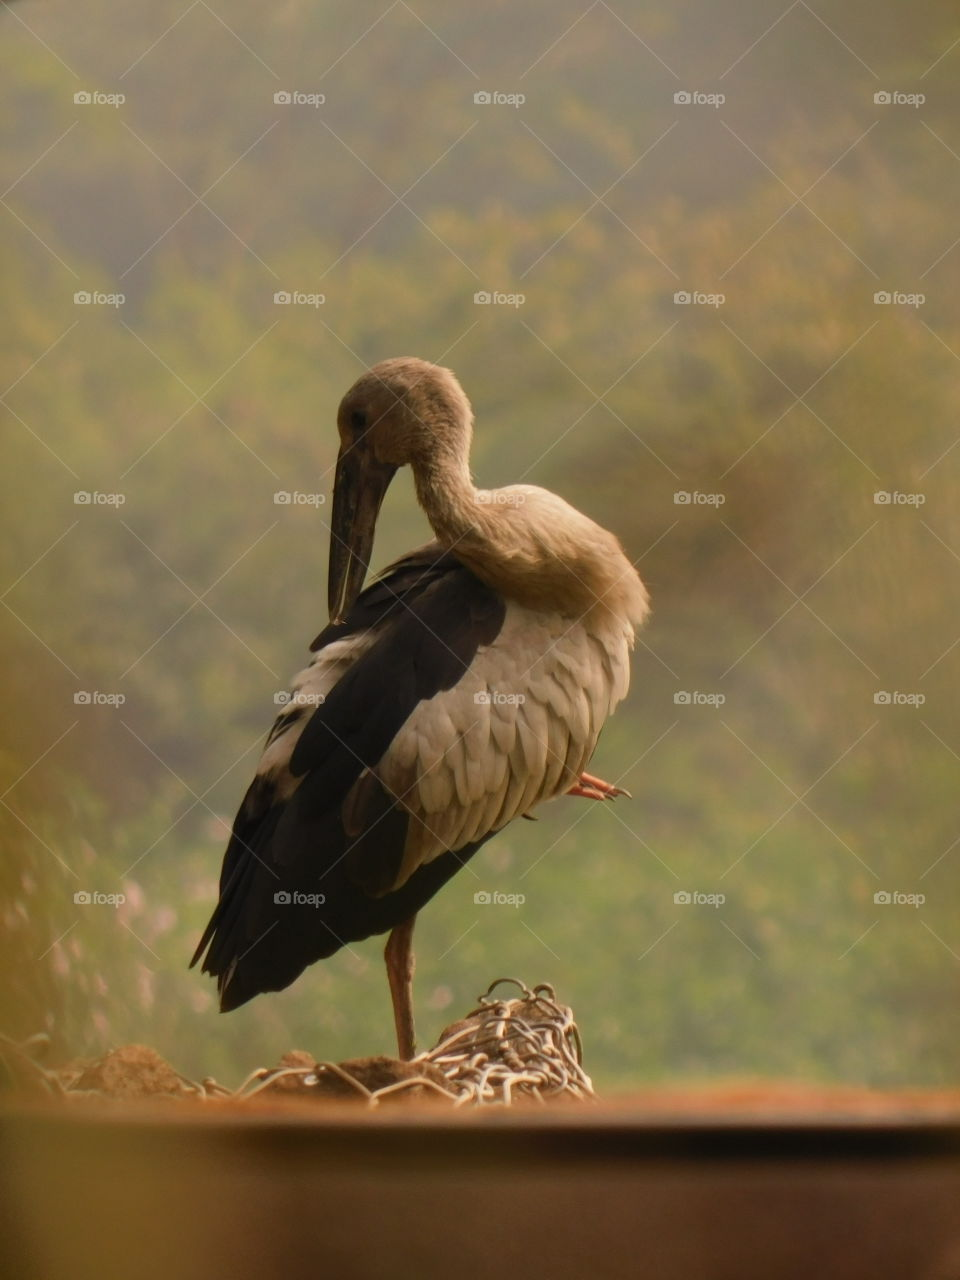 Bird Photography-The Asian openbill or Asian openbill stork (Anastomus oscitans) is a large wading bird in the stork family Ciconiidae. This distinctive stork is found mainly in the Indian subcontinent and Southeast Asia.They have wetland habitat.